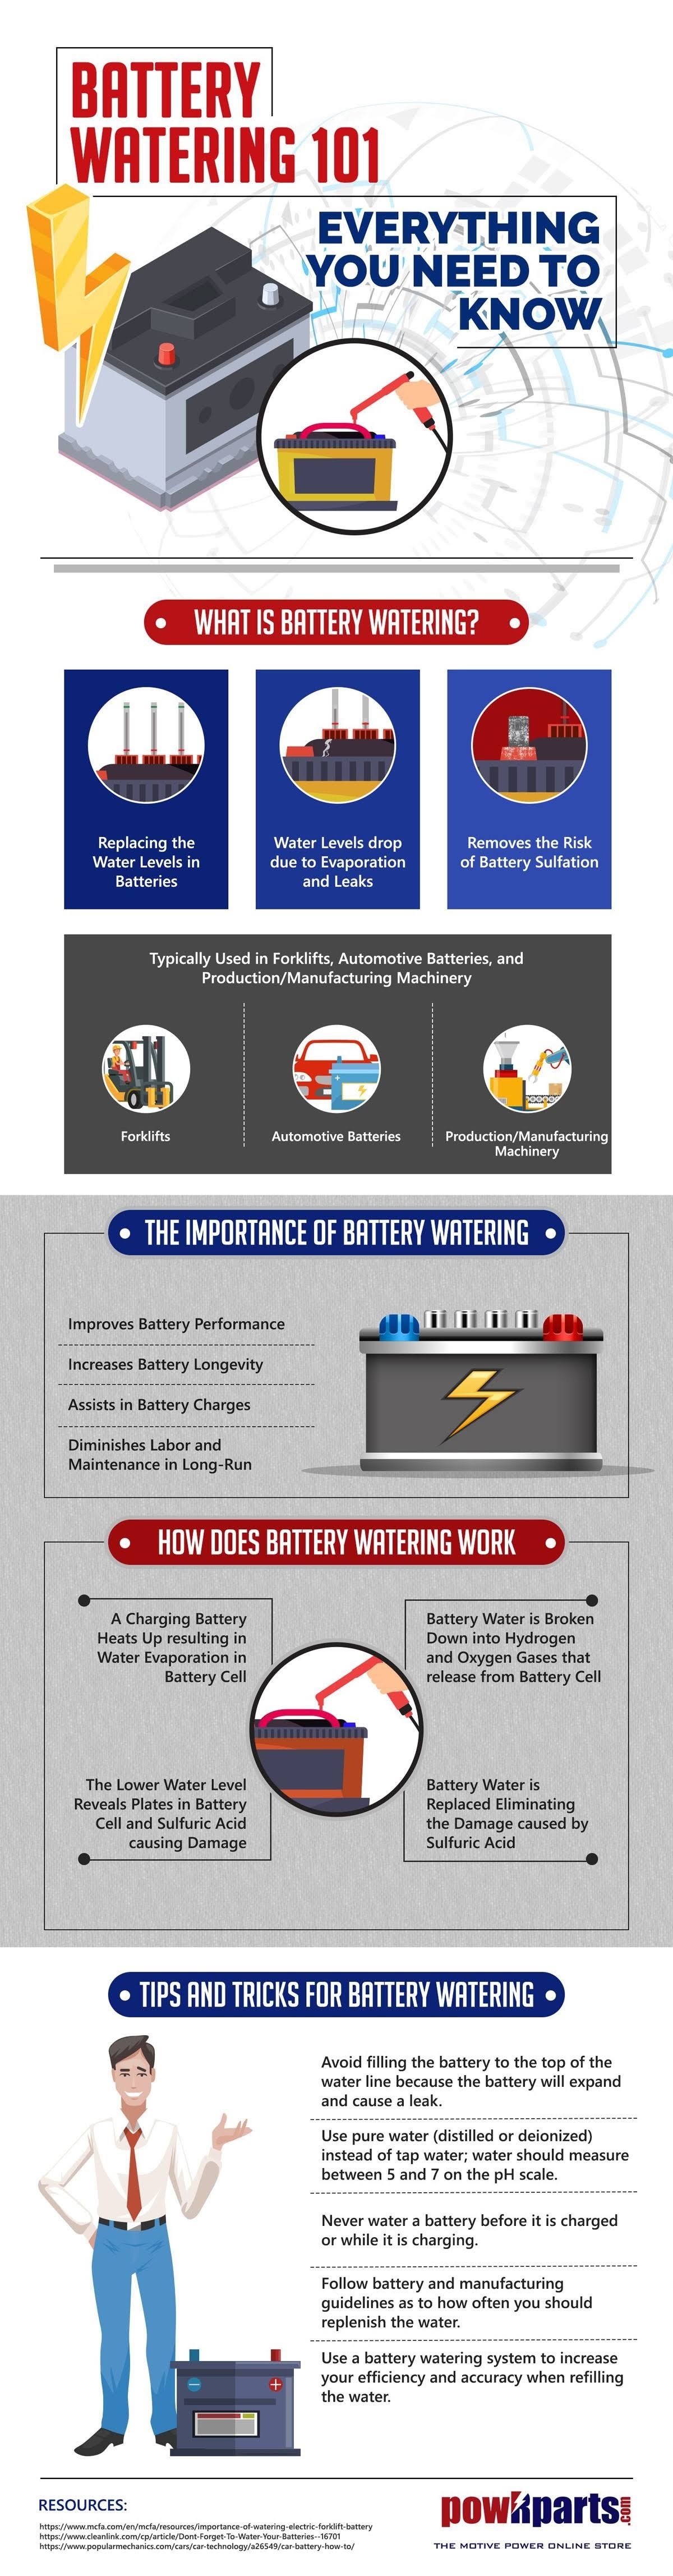 Battery Watering 101: Everything You Need to Know #infographic